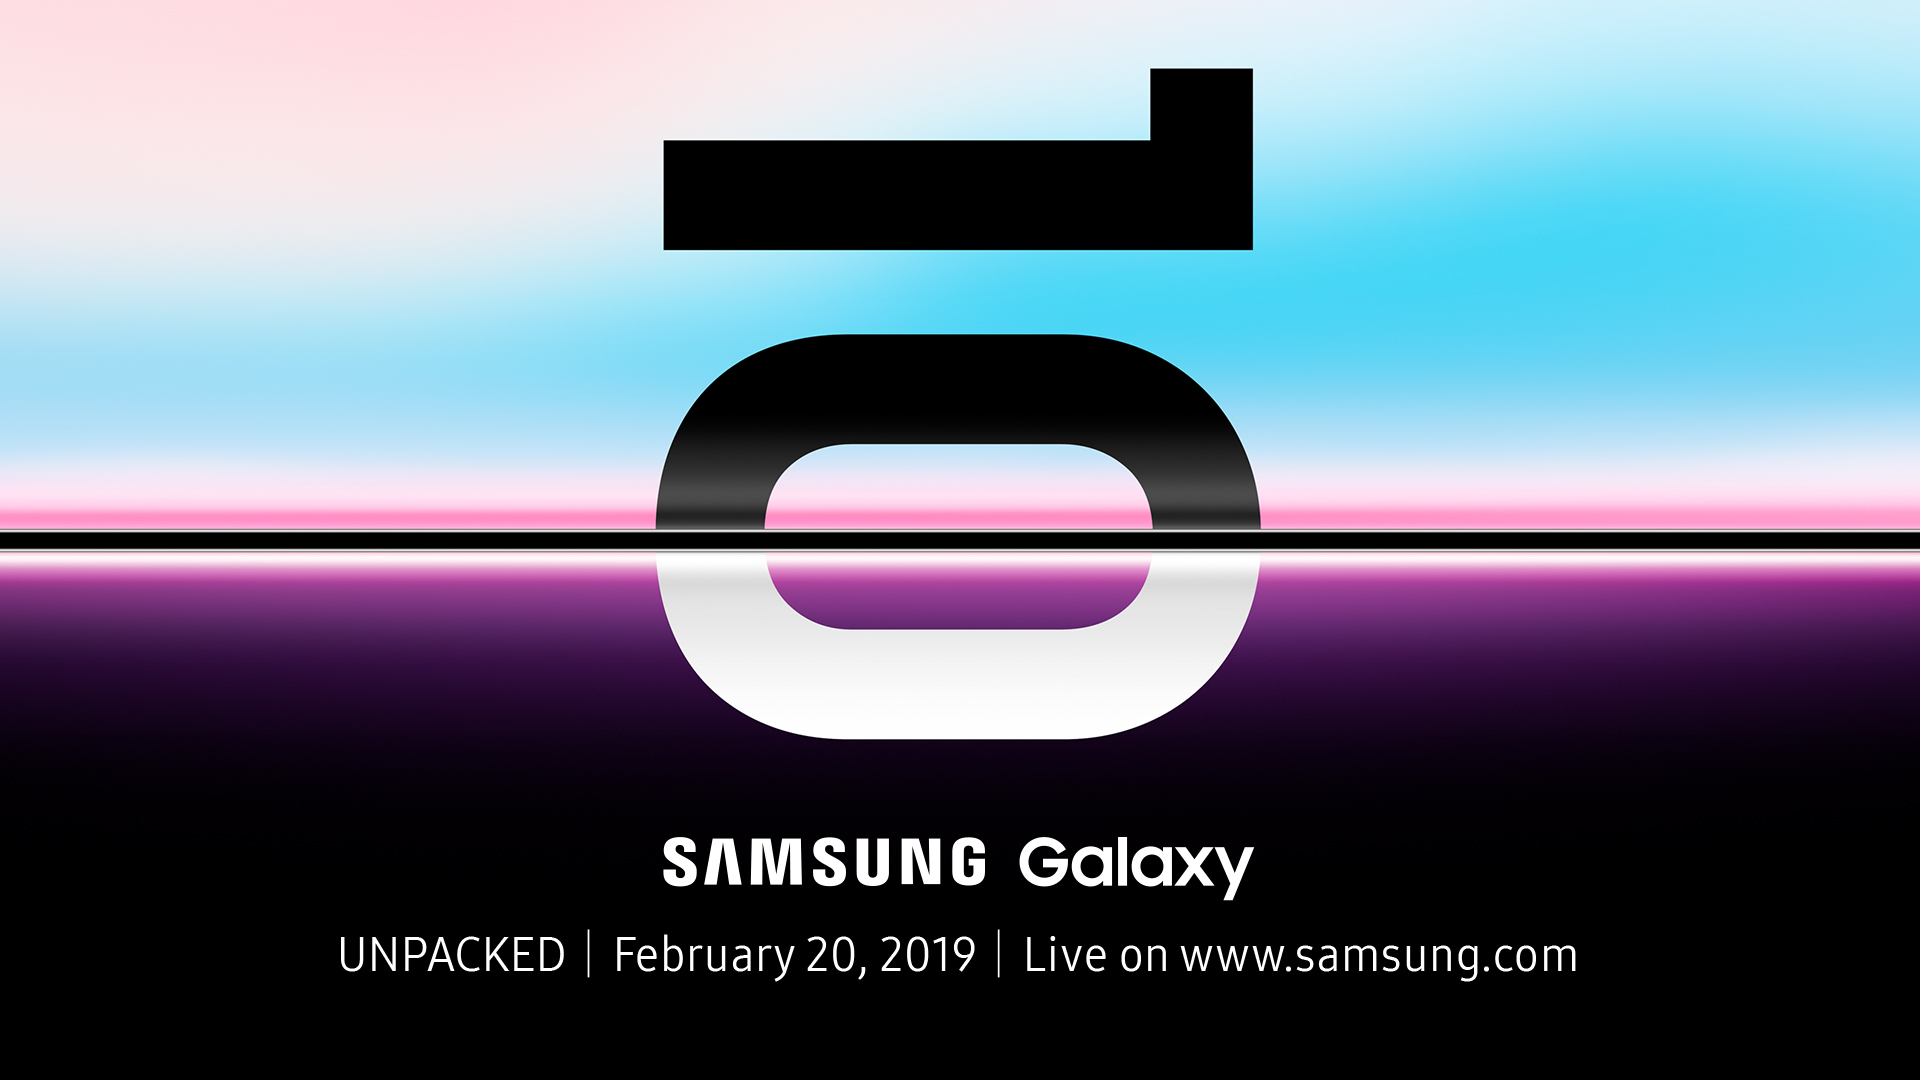 Here's how to pre-order the Samsung Galaxy S10 in Australia